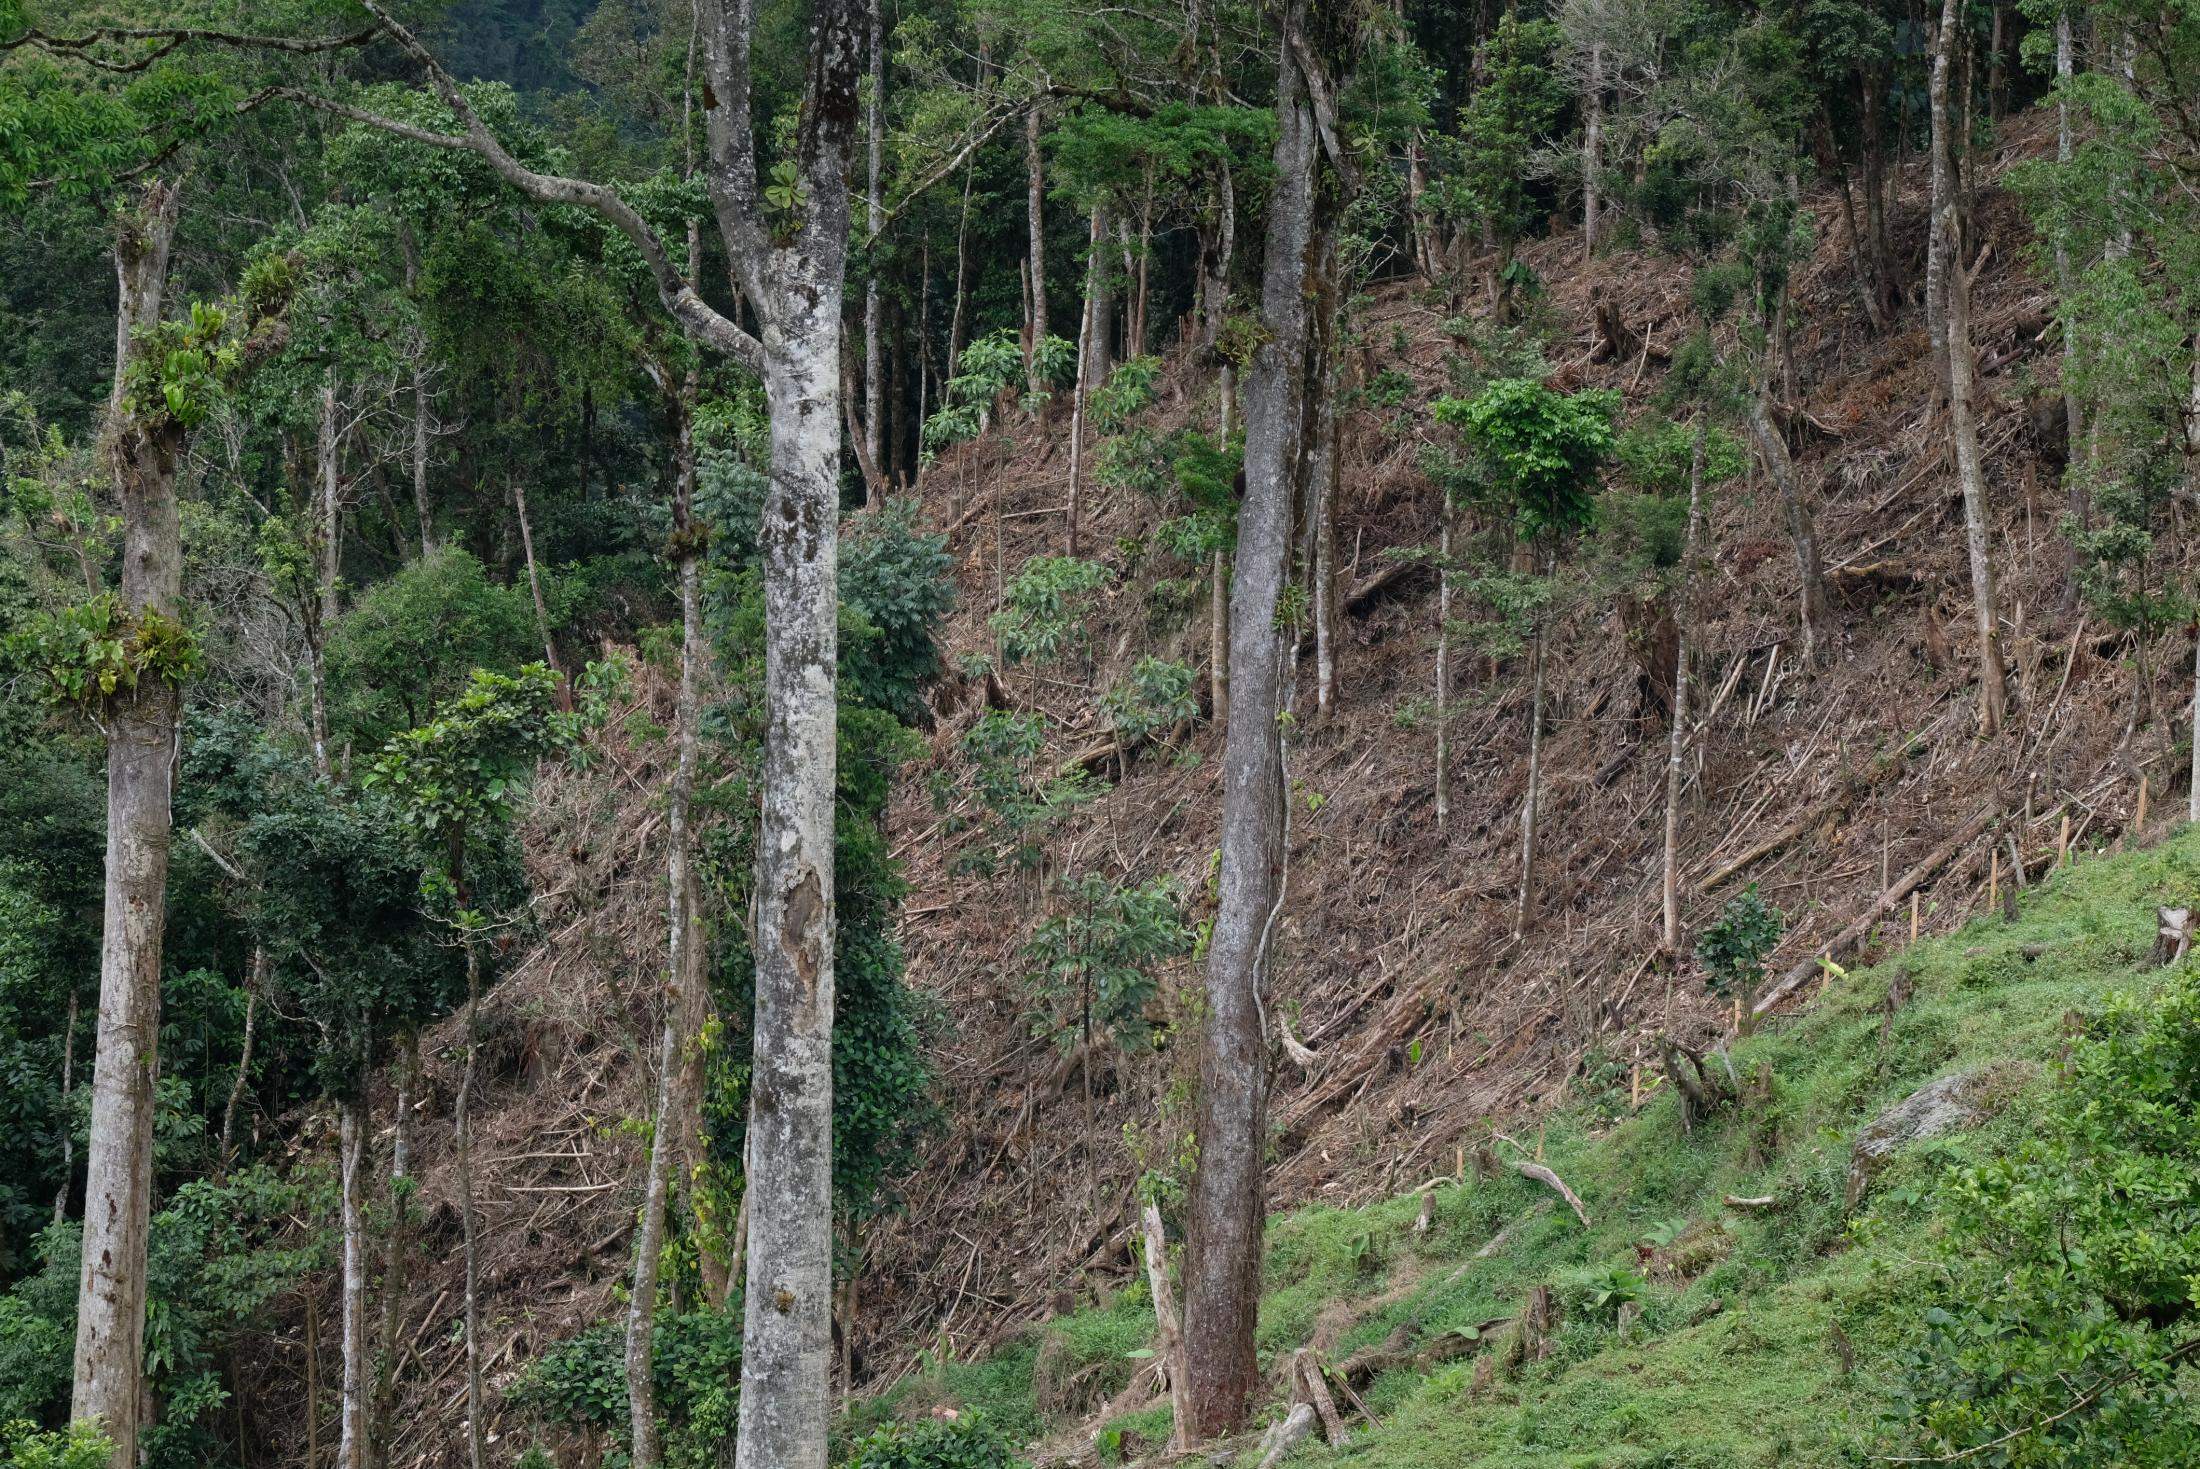 Deforestation maximizes the effects of climate change because it decreases the surface area of the forest and exposes the core area to drier conditions and higher temperatures. Meaning that not only that part of the area is affected, but the whole forest.